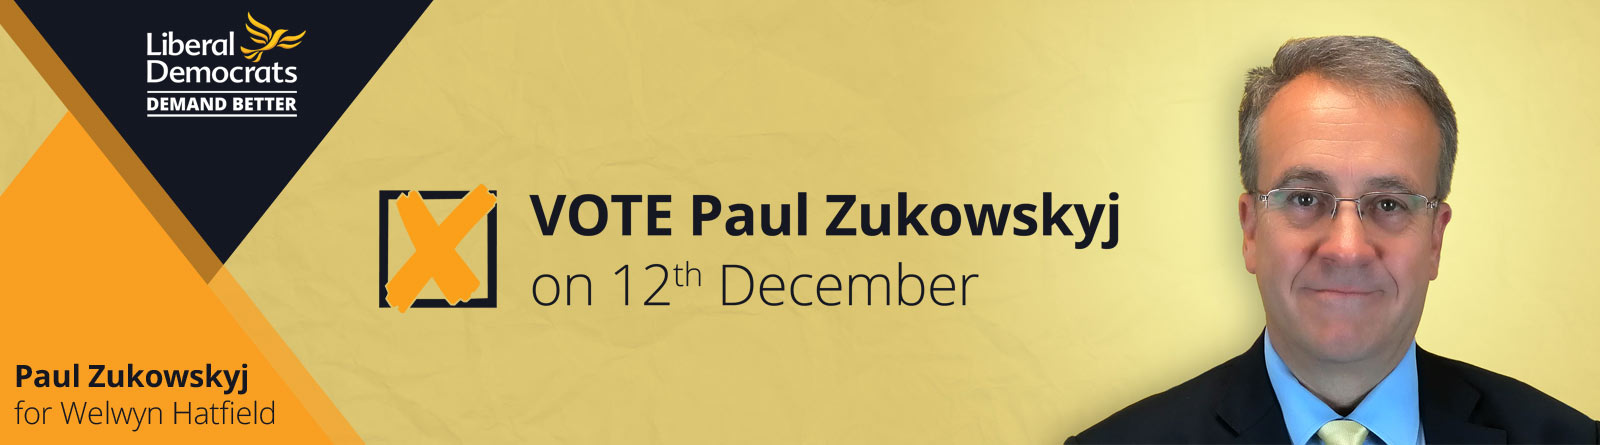 Vote Paul Zukowskyj on 12th December